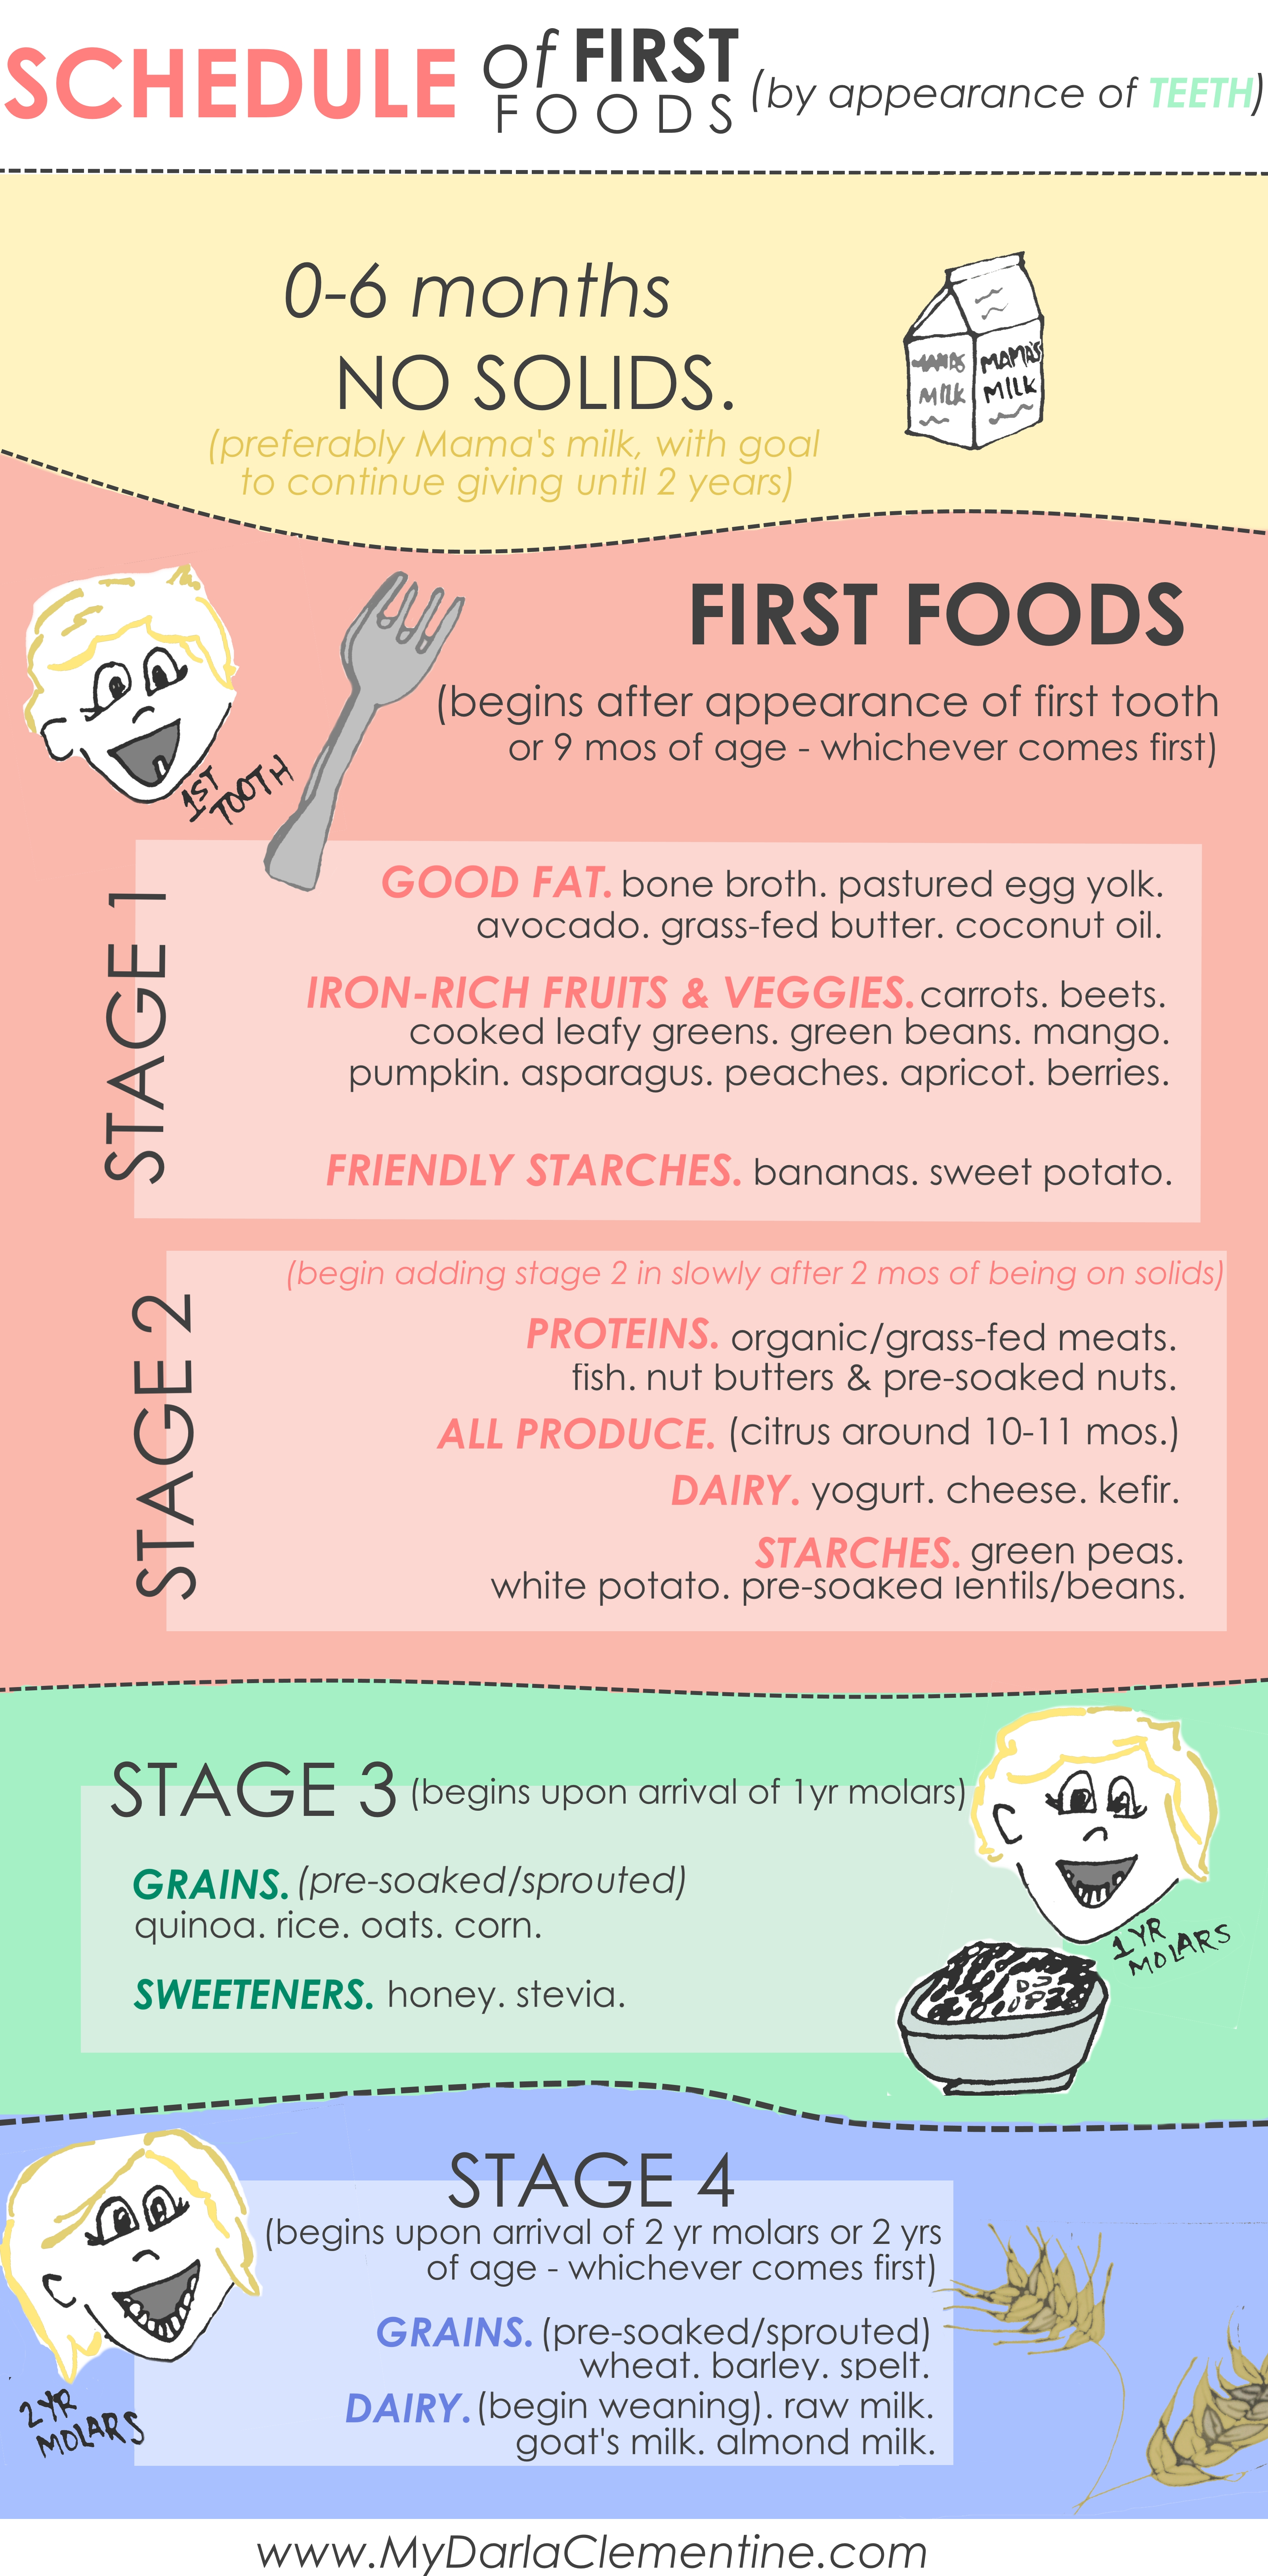 timeline of first foods by appearance of teeth how to use molars and teeth to